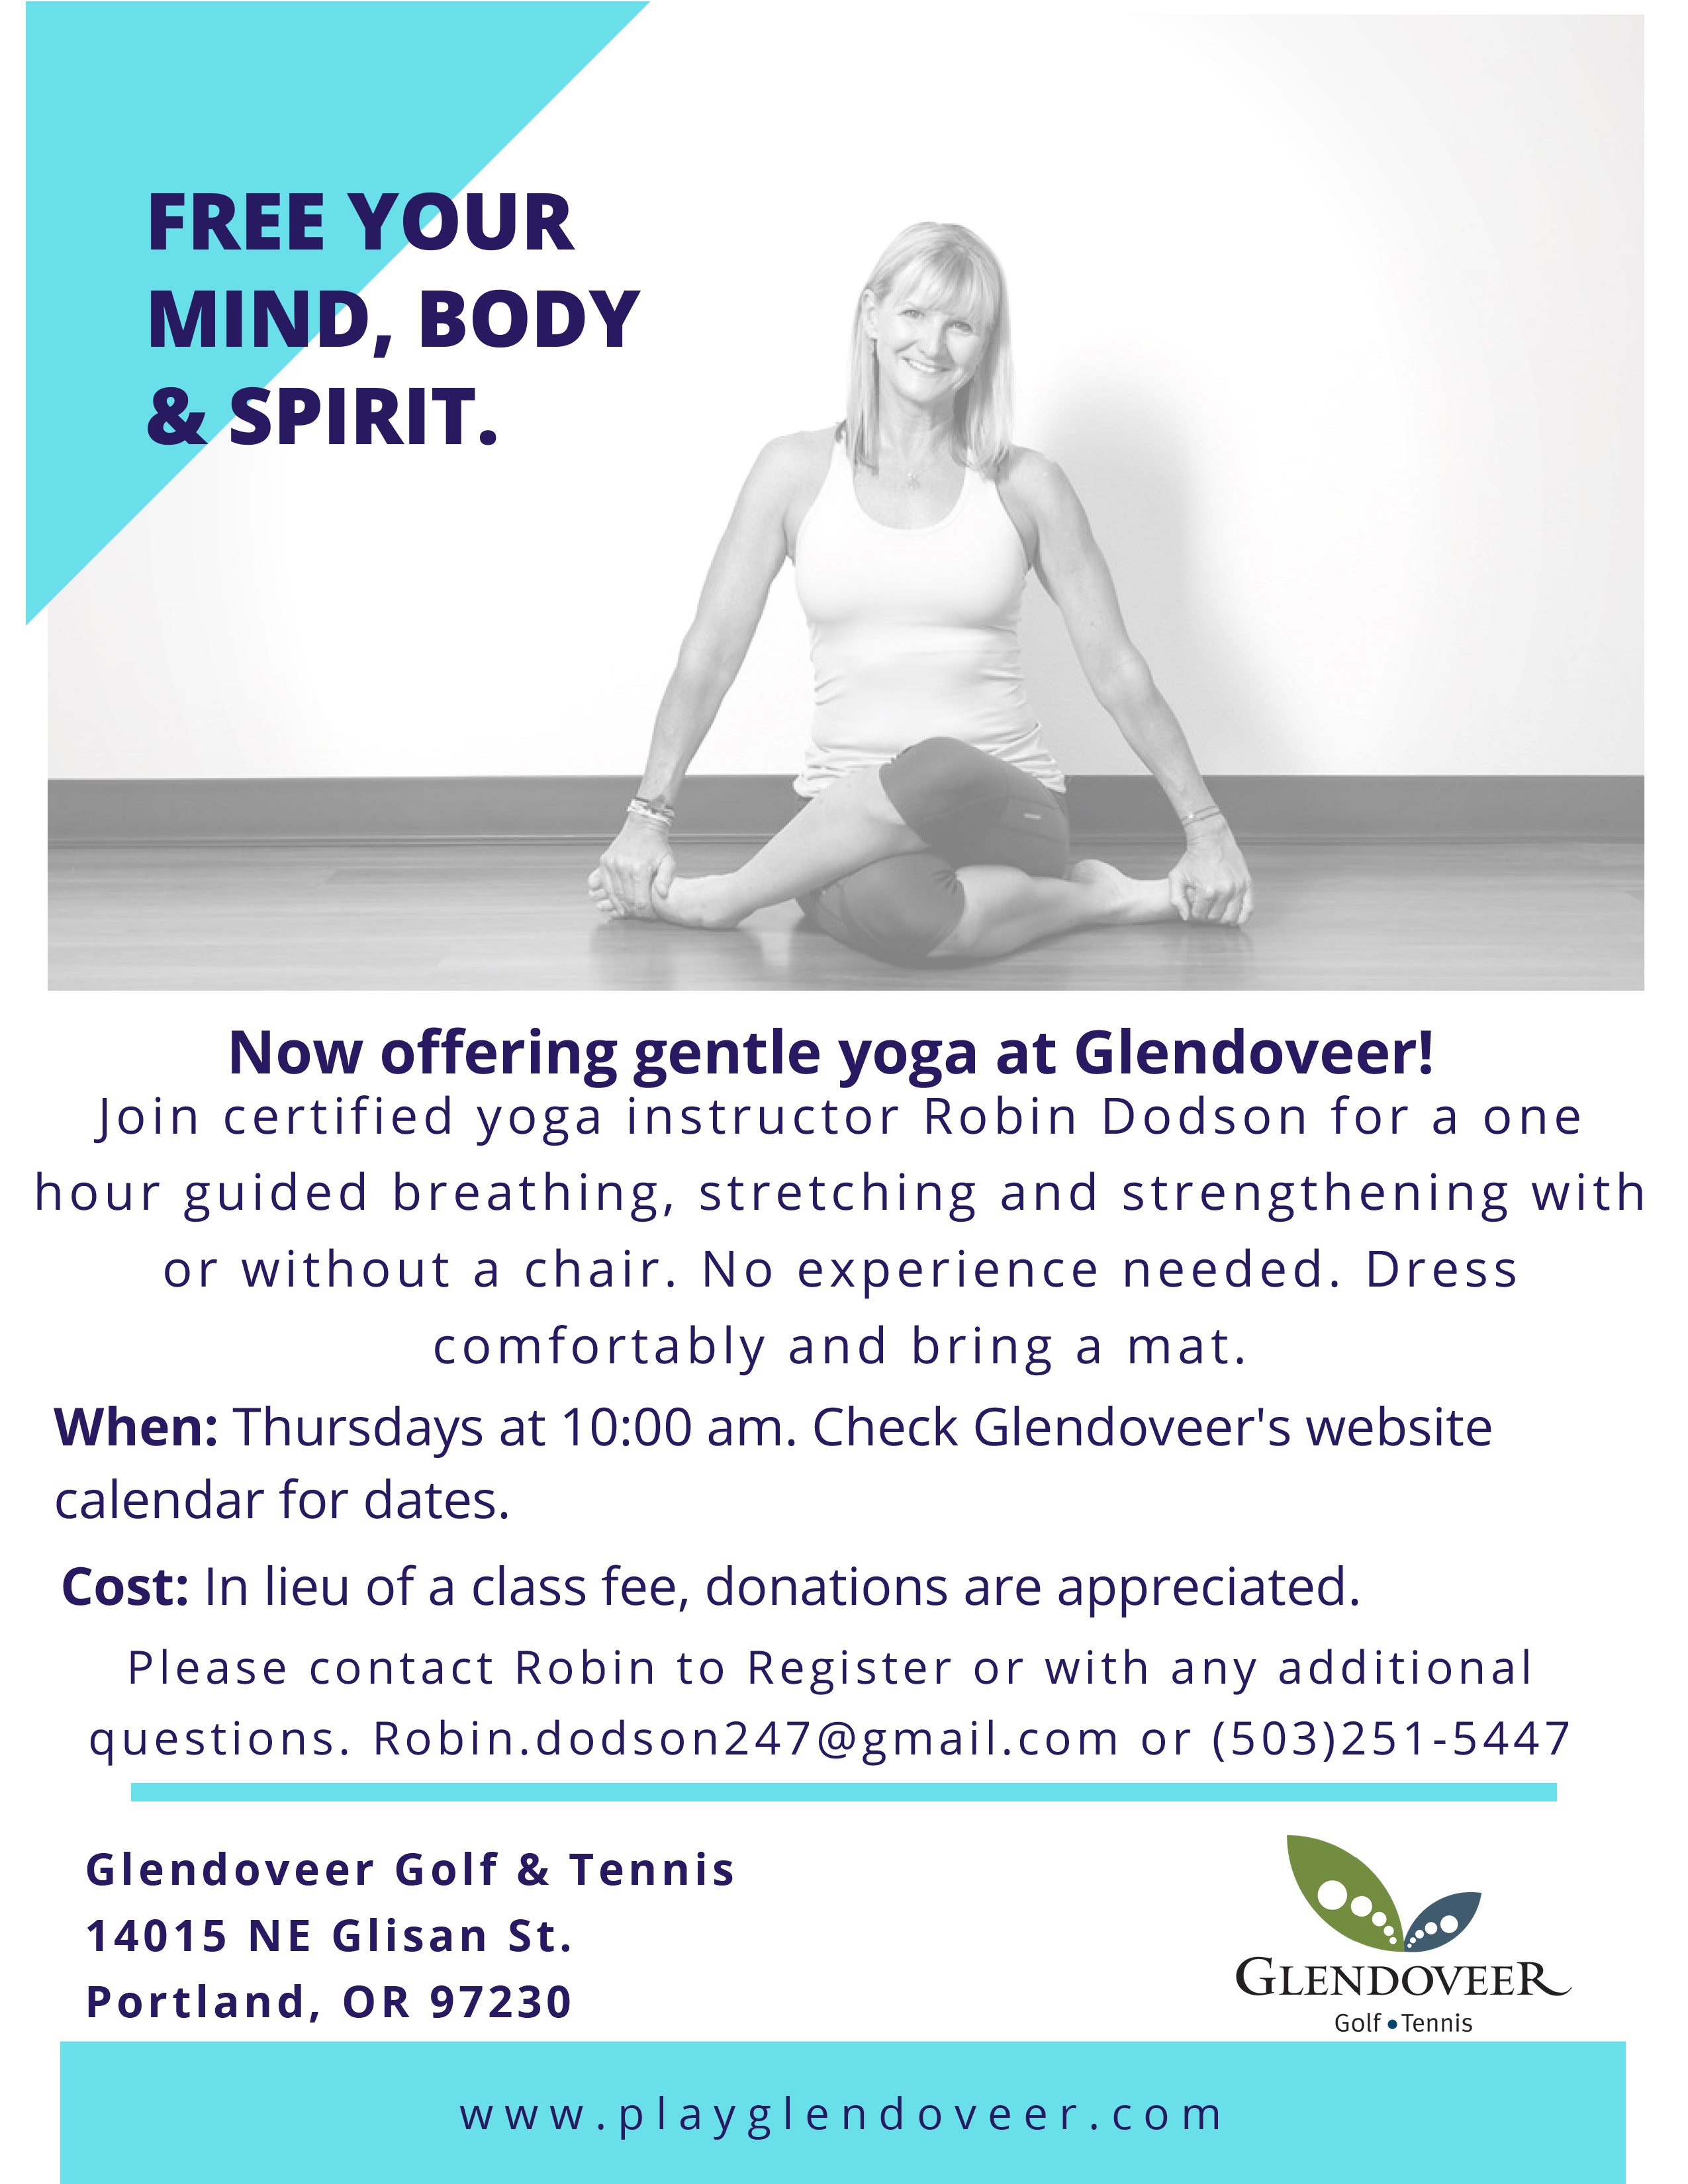 Gentle Yoga at Glendoveer 4